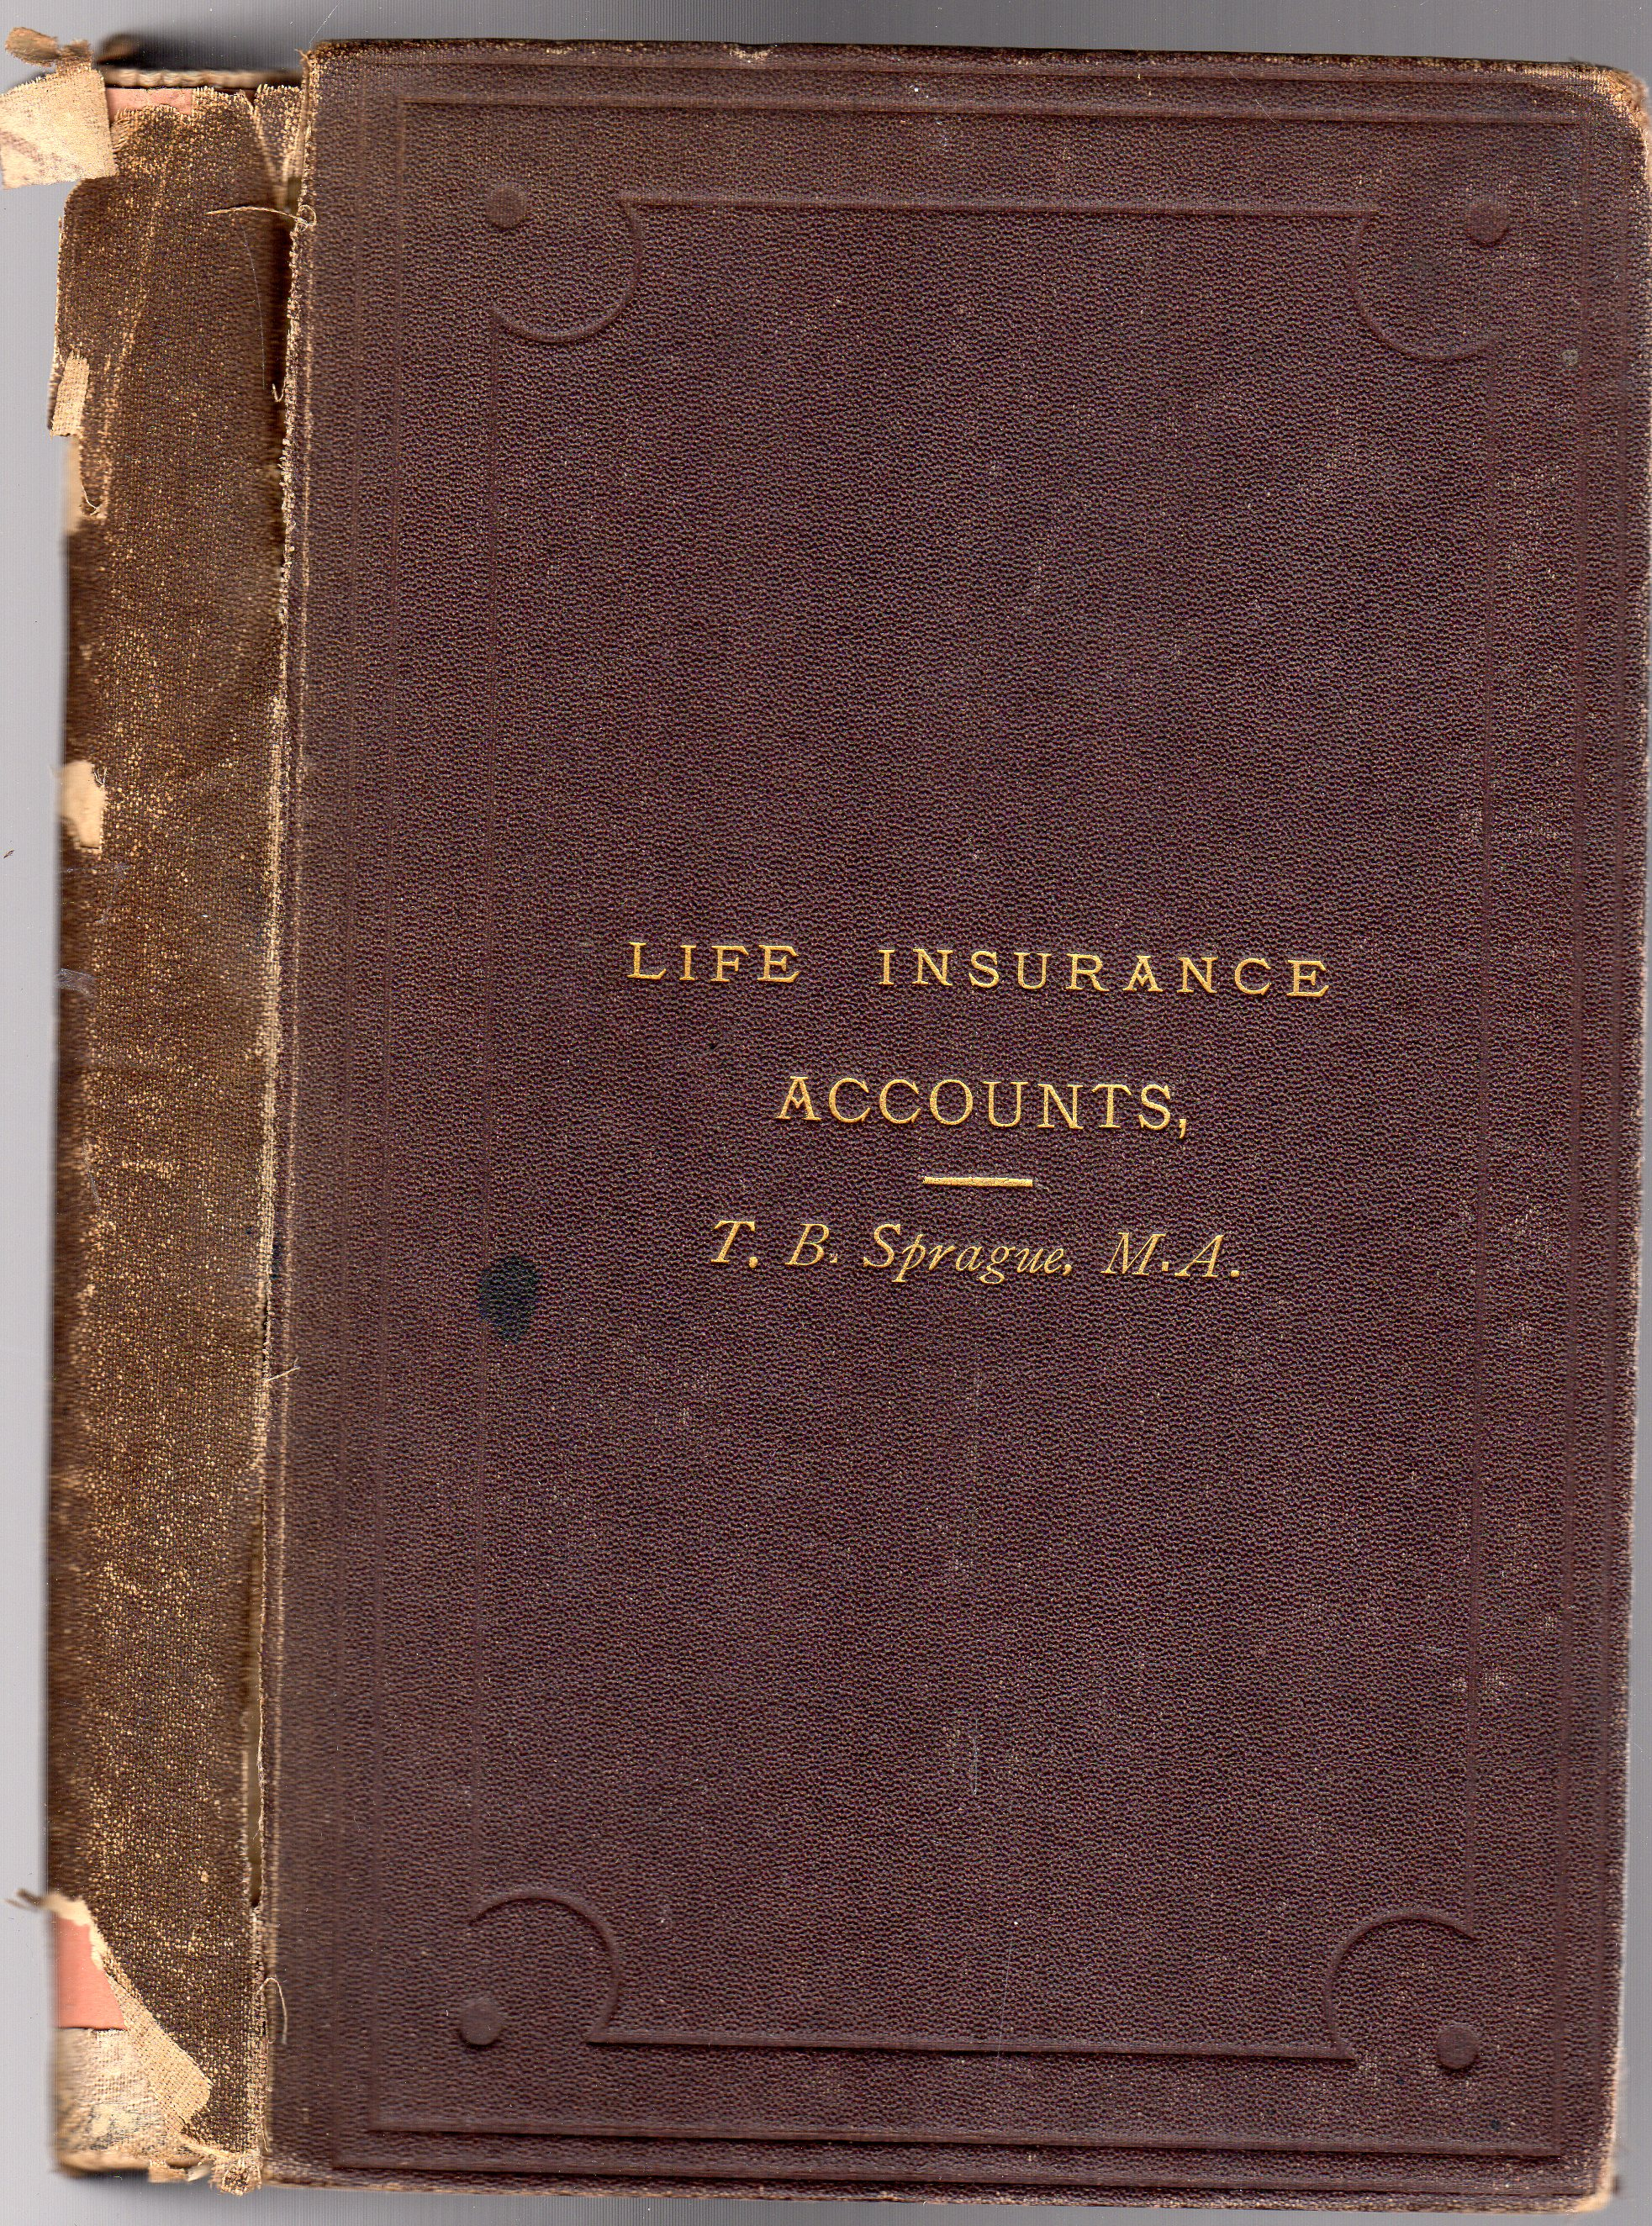 Image for A Treatis on Life Insurance Accounts : Forming Part II ov Life Insurance in 1872